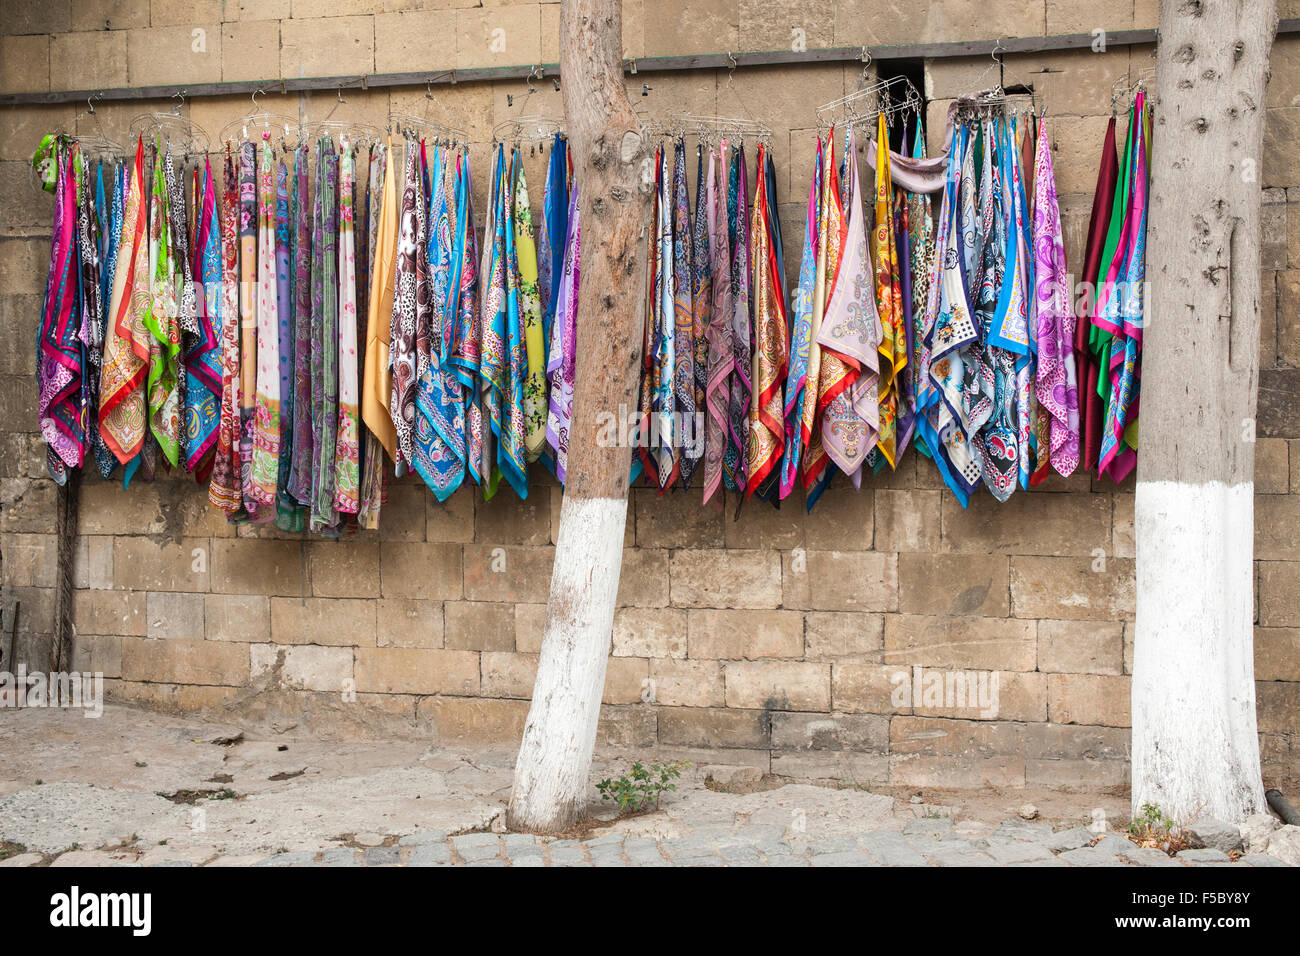 Colourful scarves hanging in the Old Town (İcheri Sheher) in Baku, capital of Azerbaijan. - Stock Image